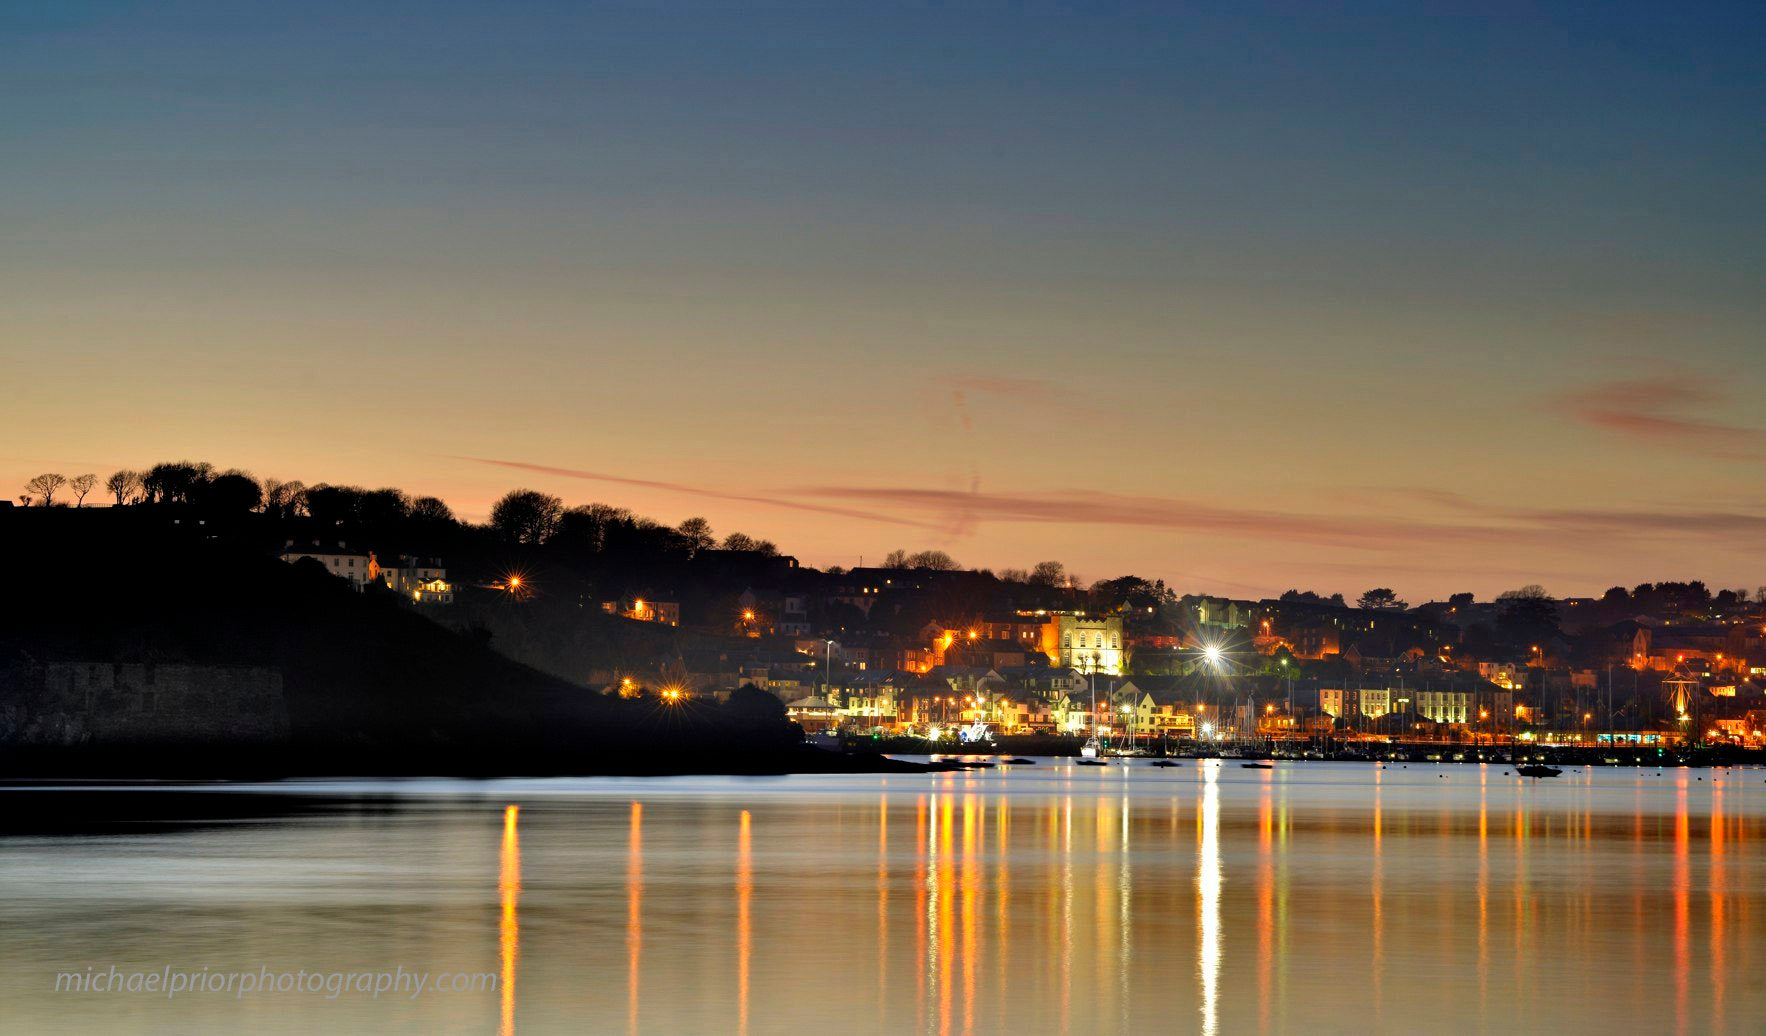 Sunset At Kinsale - Michael Prior Photography